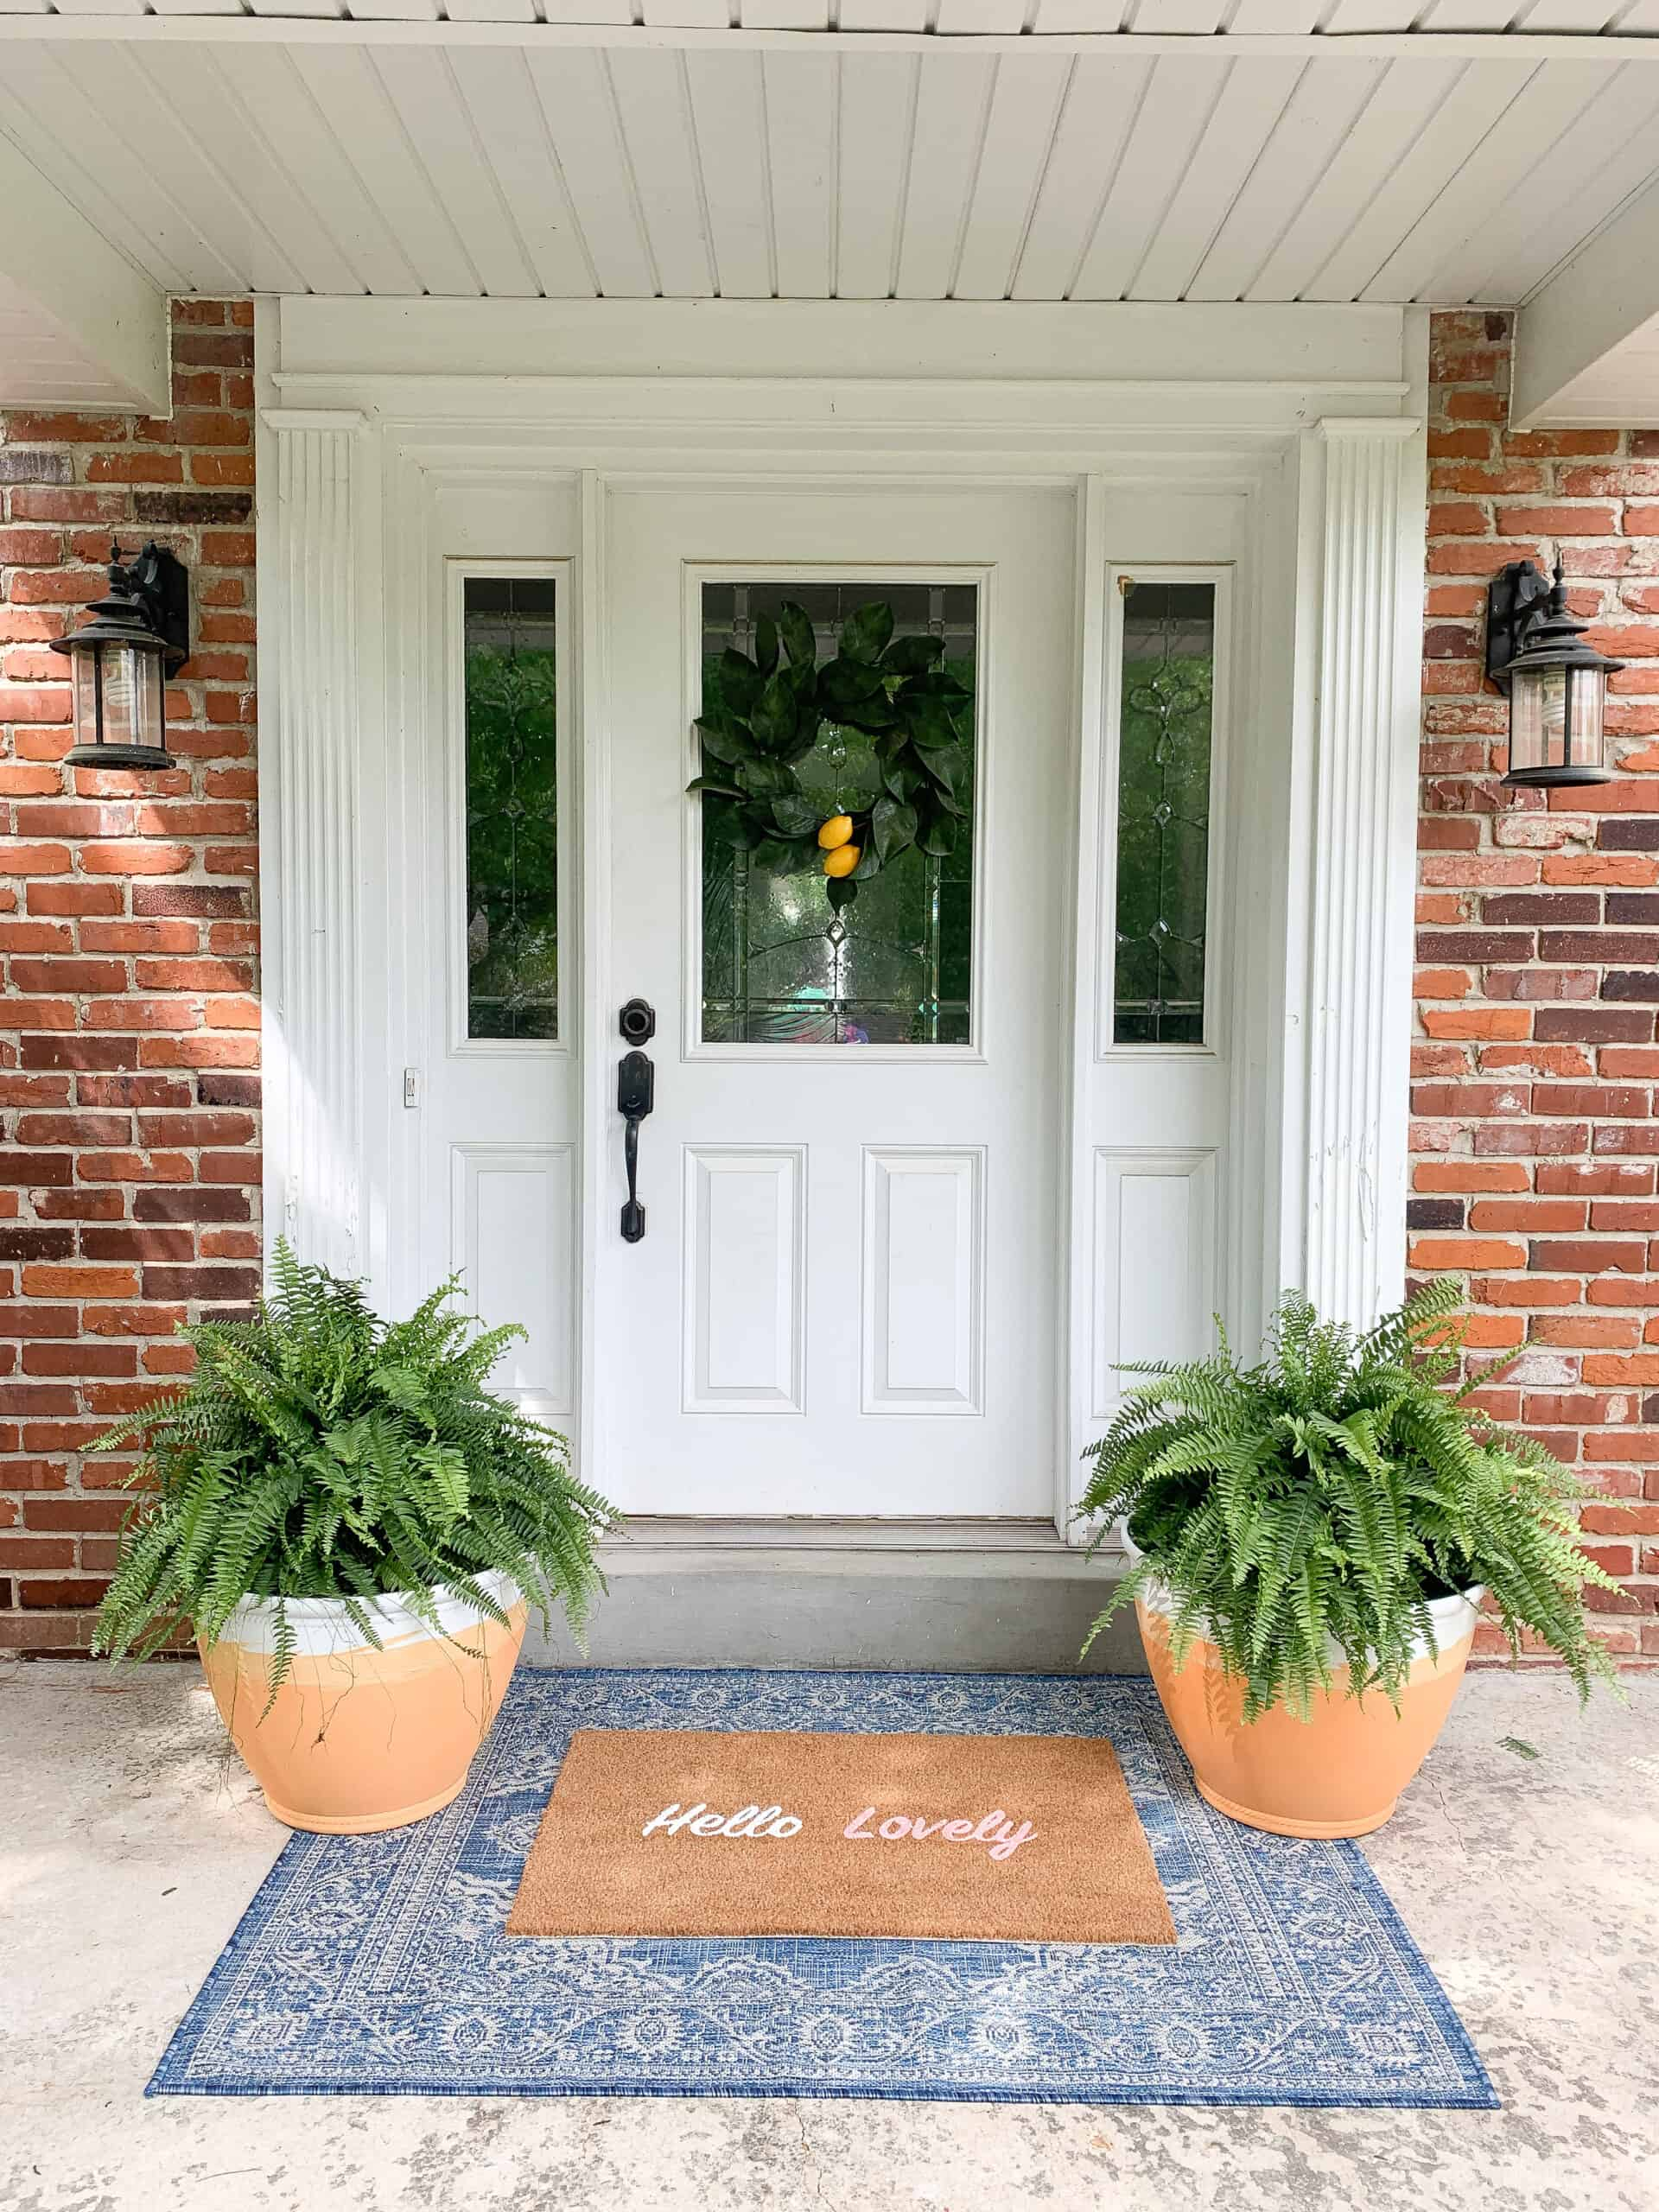 DIY terracotta pots on porch